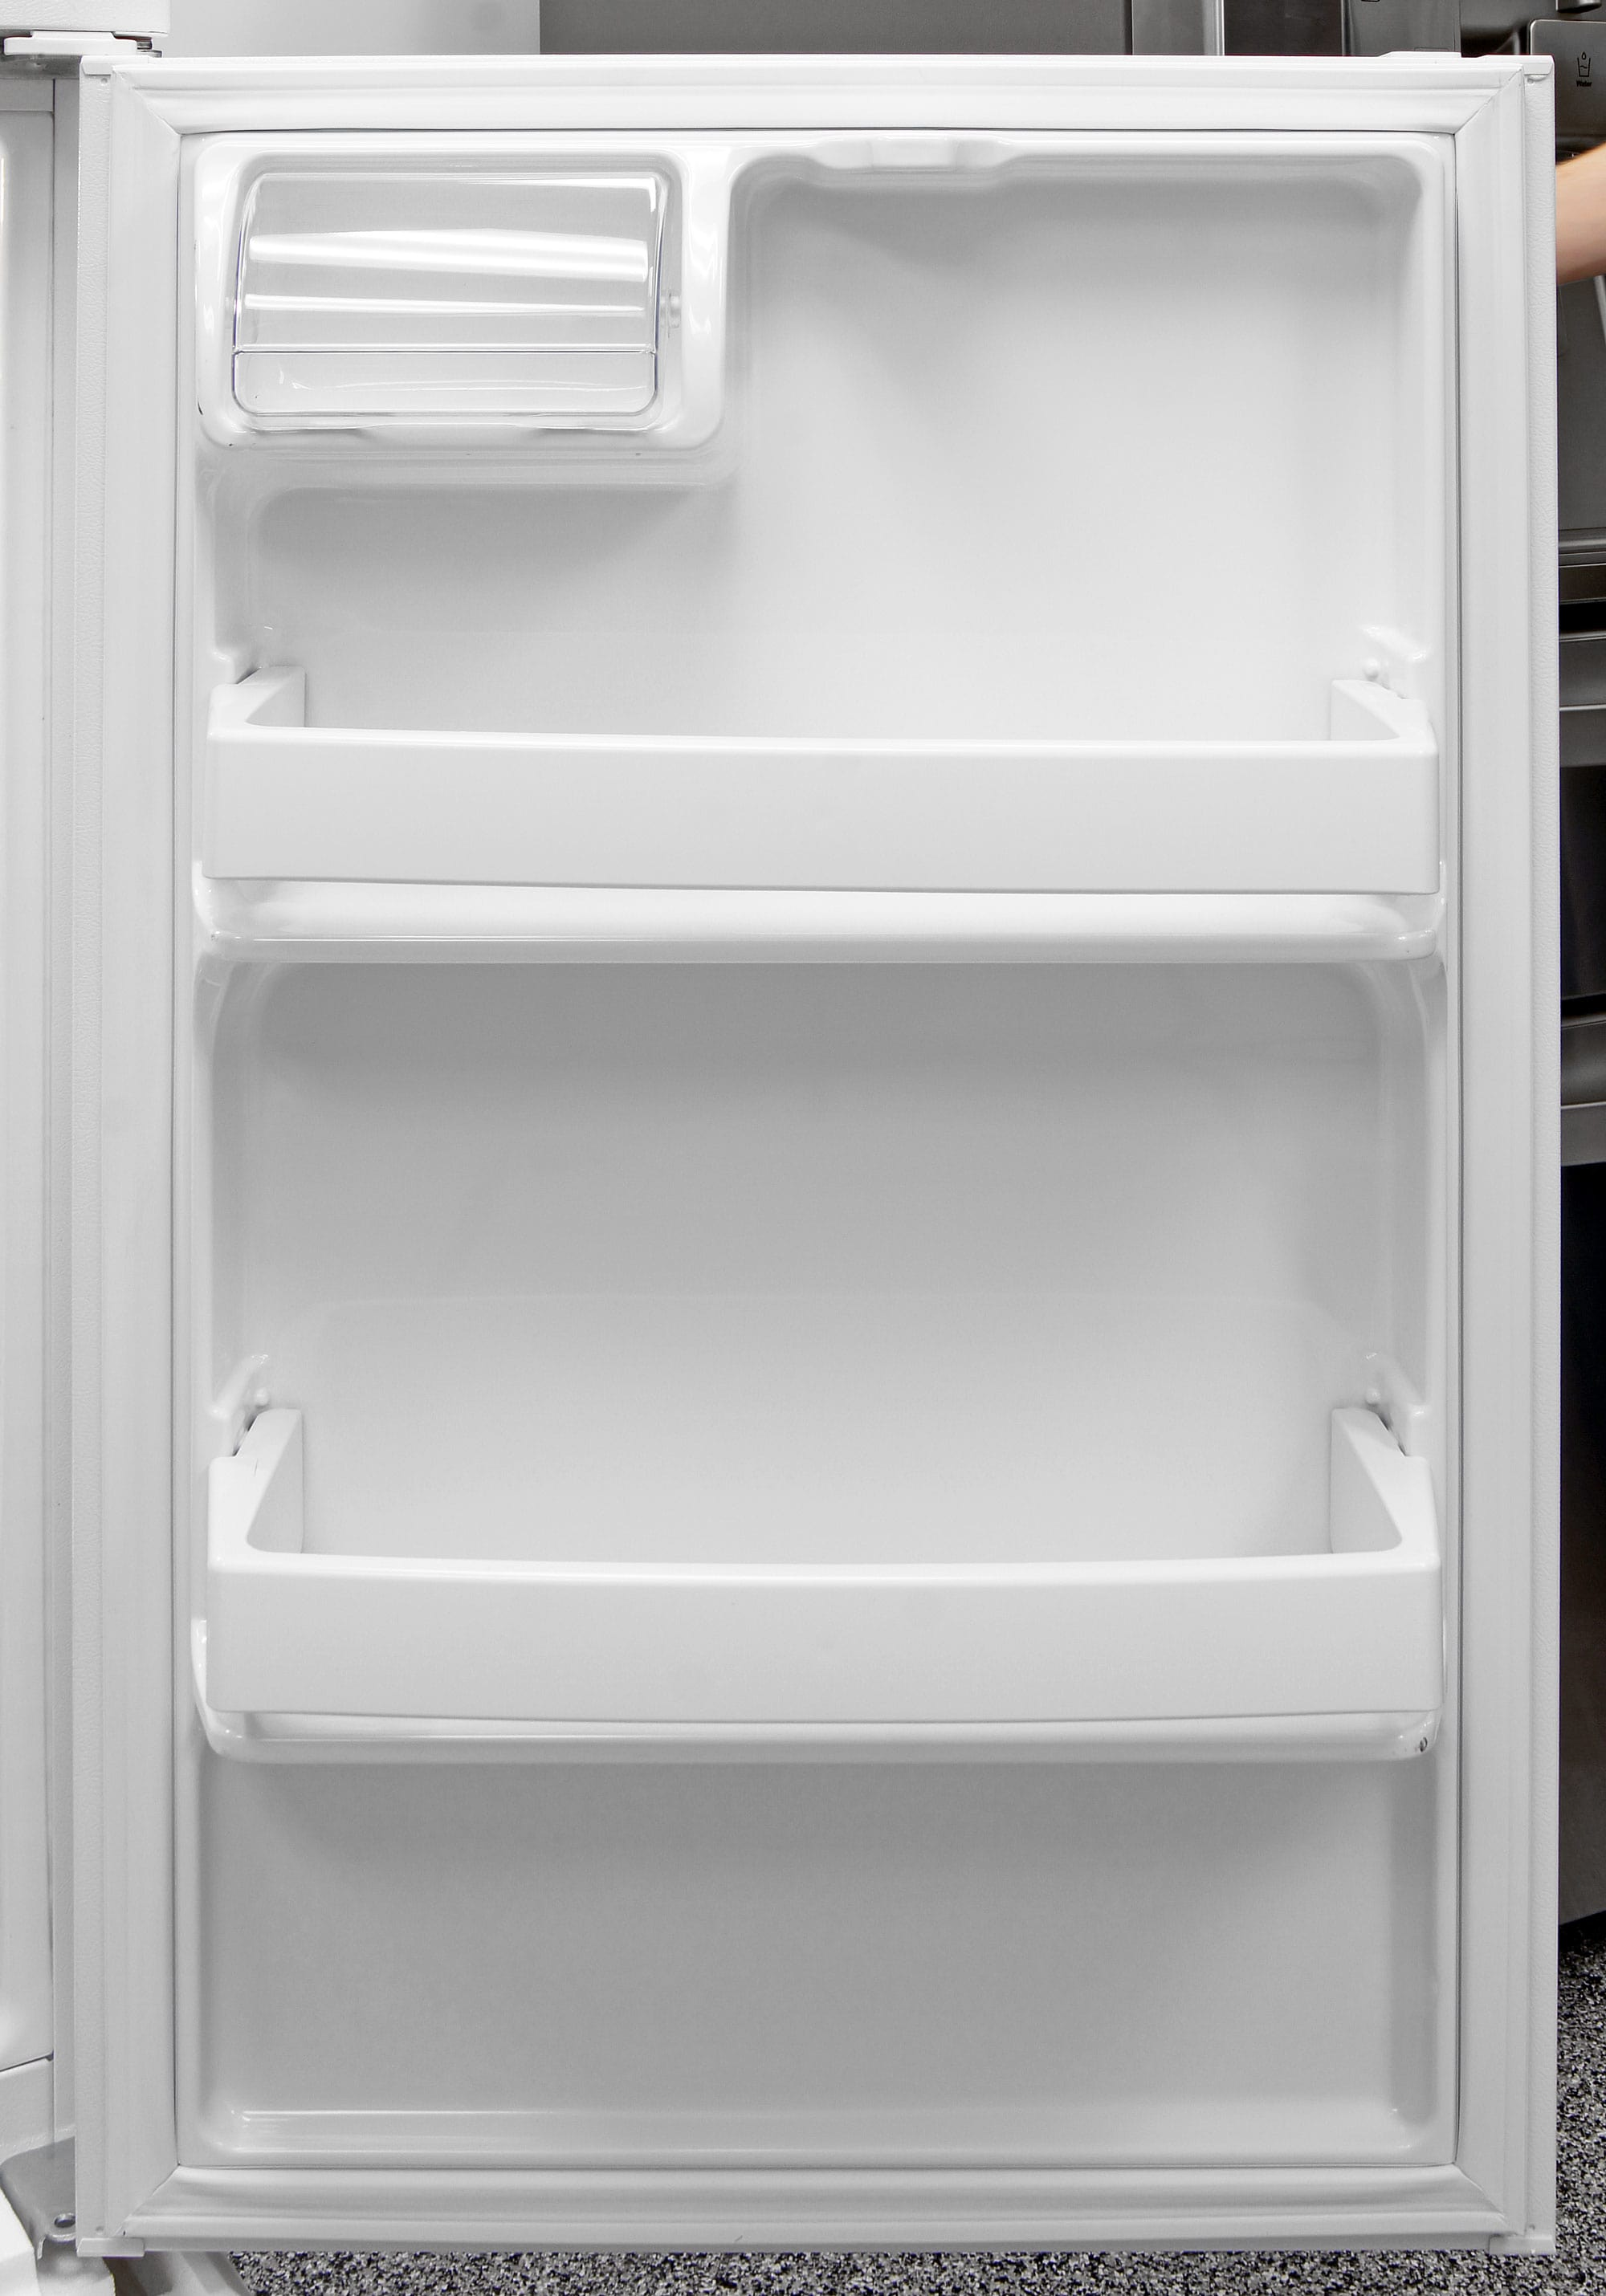 You can't adjust any of the shelves on the GE GTS16DTHWW's fridge door, but they offer a variety of heights and enough depth to fit a gallon jug.